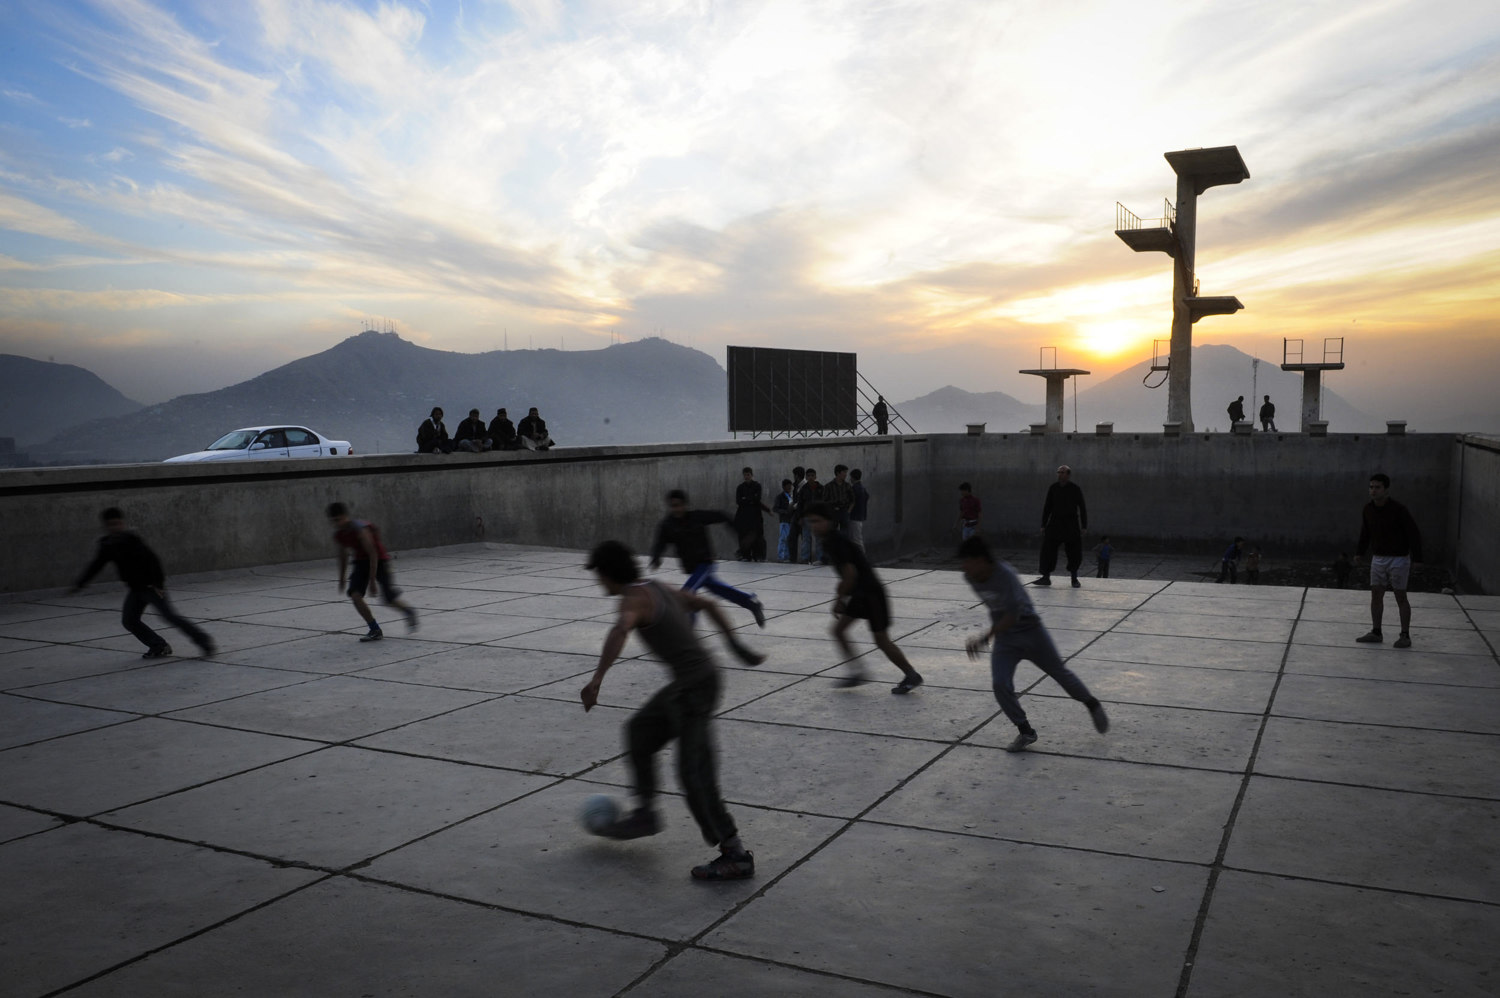 Boys and men play football in an empty pool at the top of Wazir Akbahan Hill. The pool was built by the soviets during their short occupation. Kabul, Afghanistan.